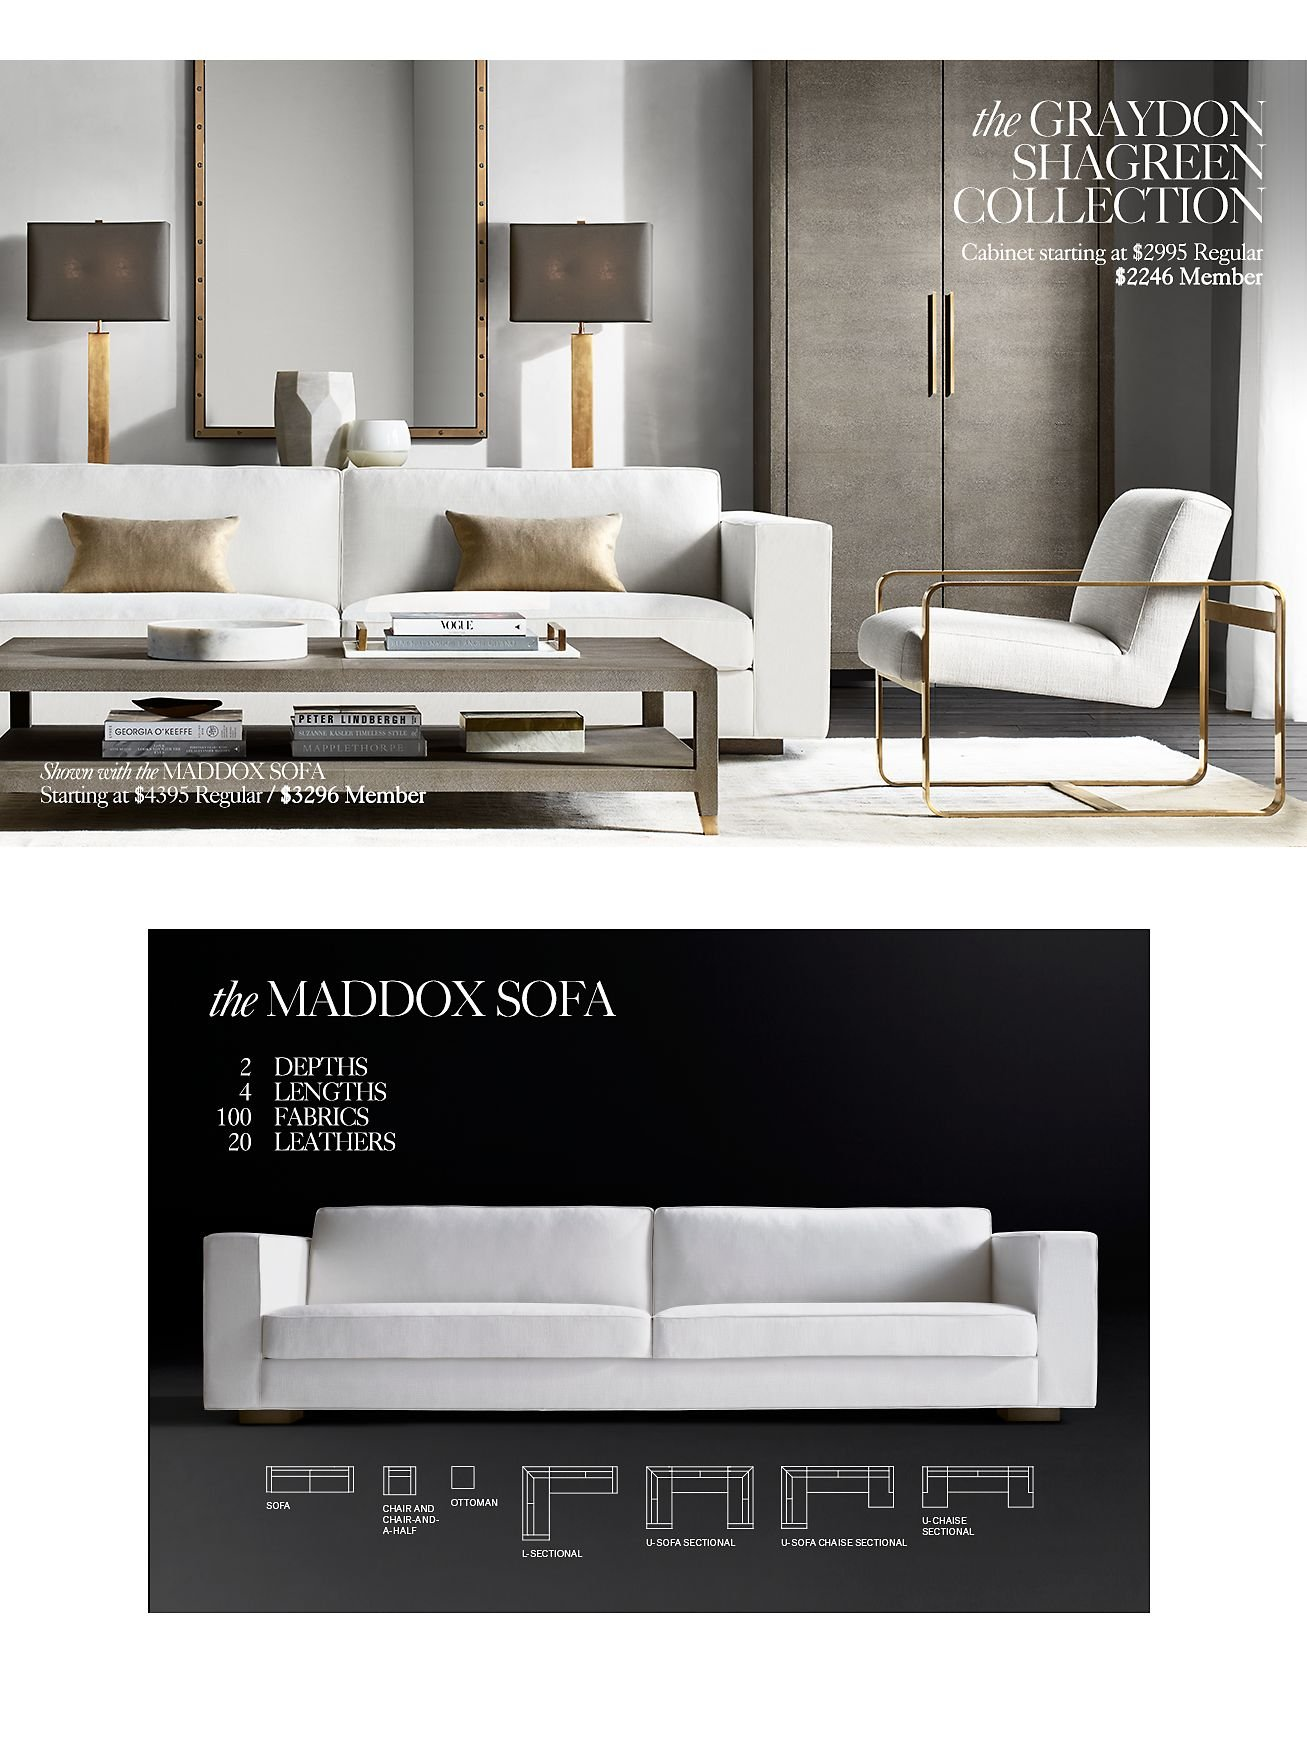 Restoration Hardware: Save 25% On The Graydon Shagreen Collection With The  RH Members Program | Milled